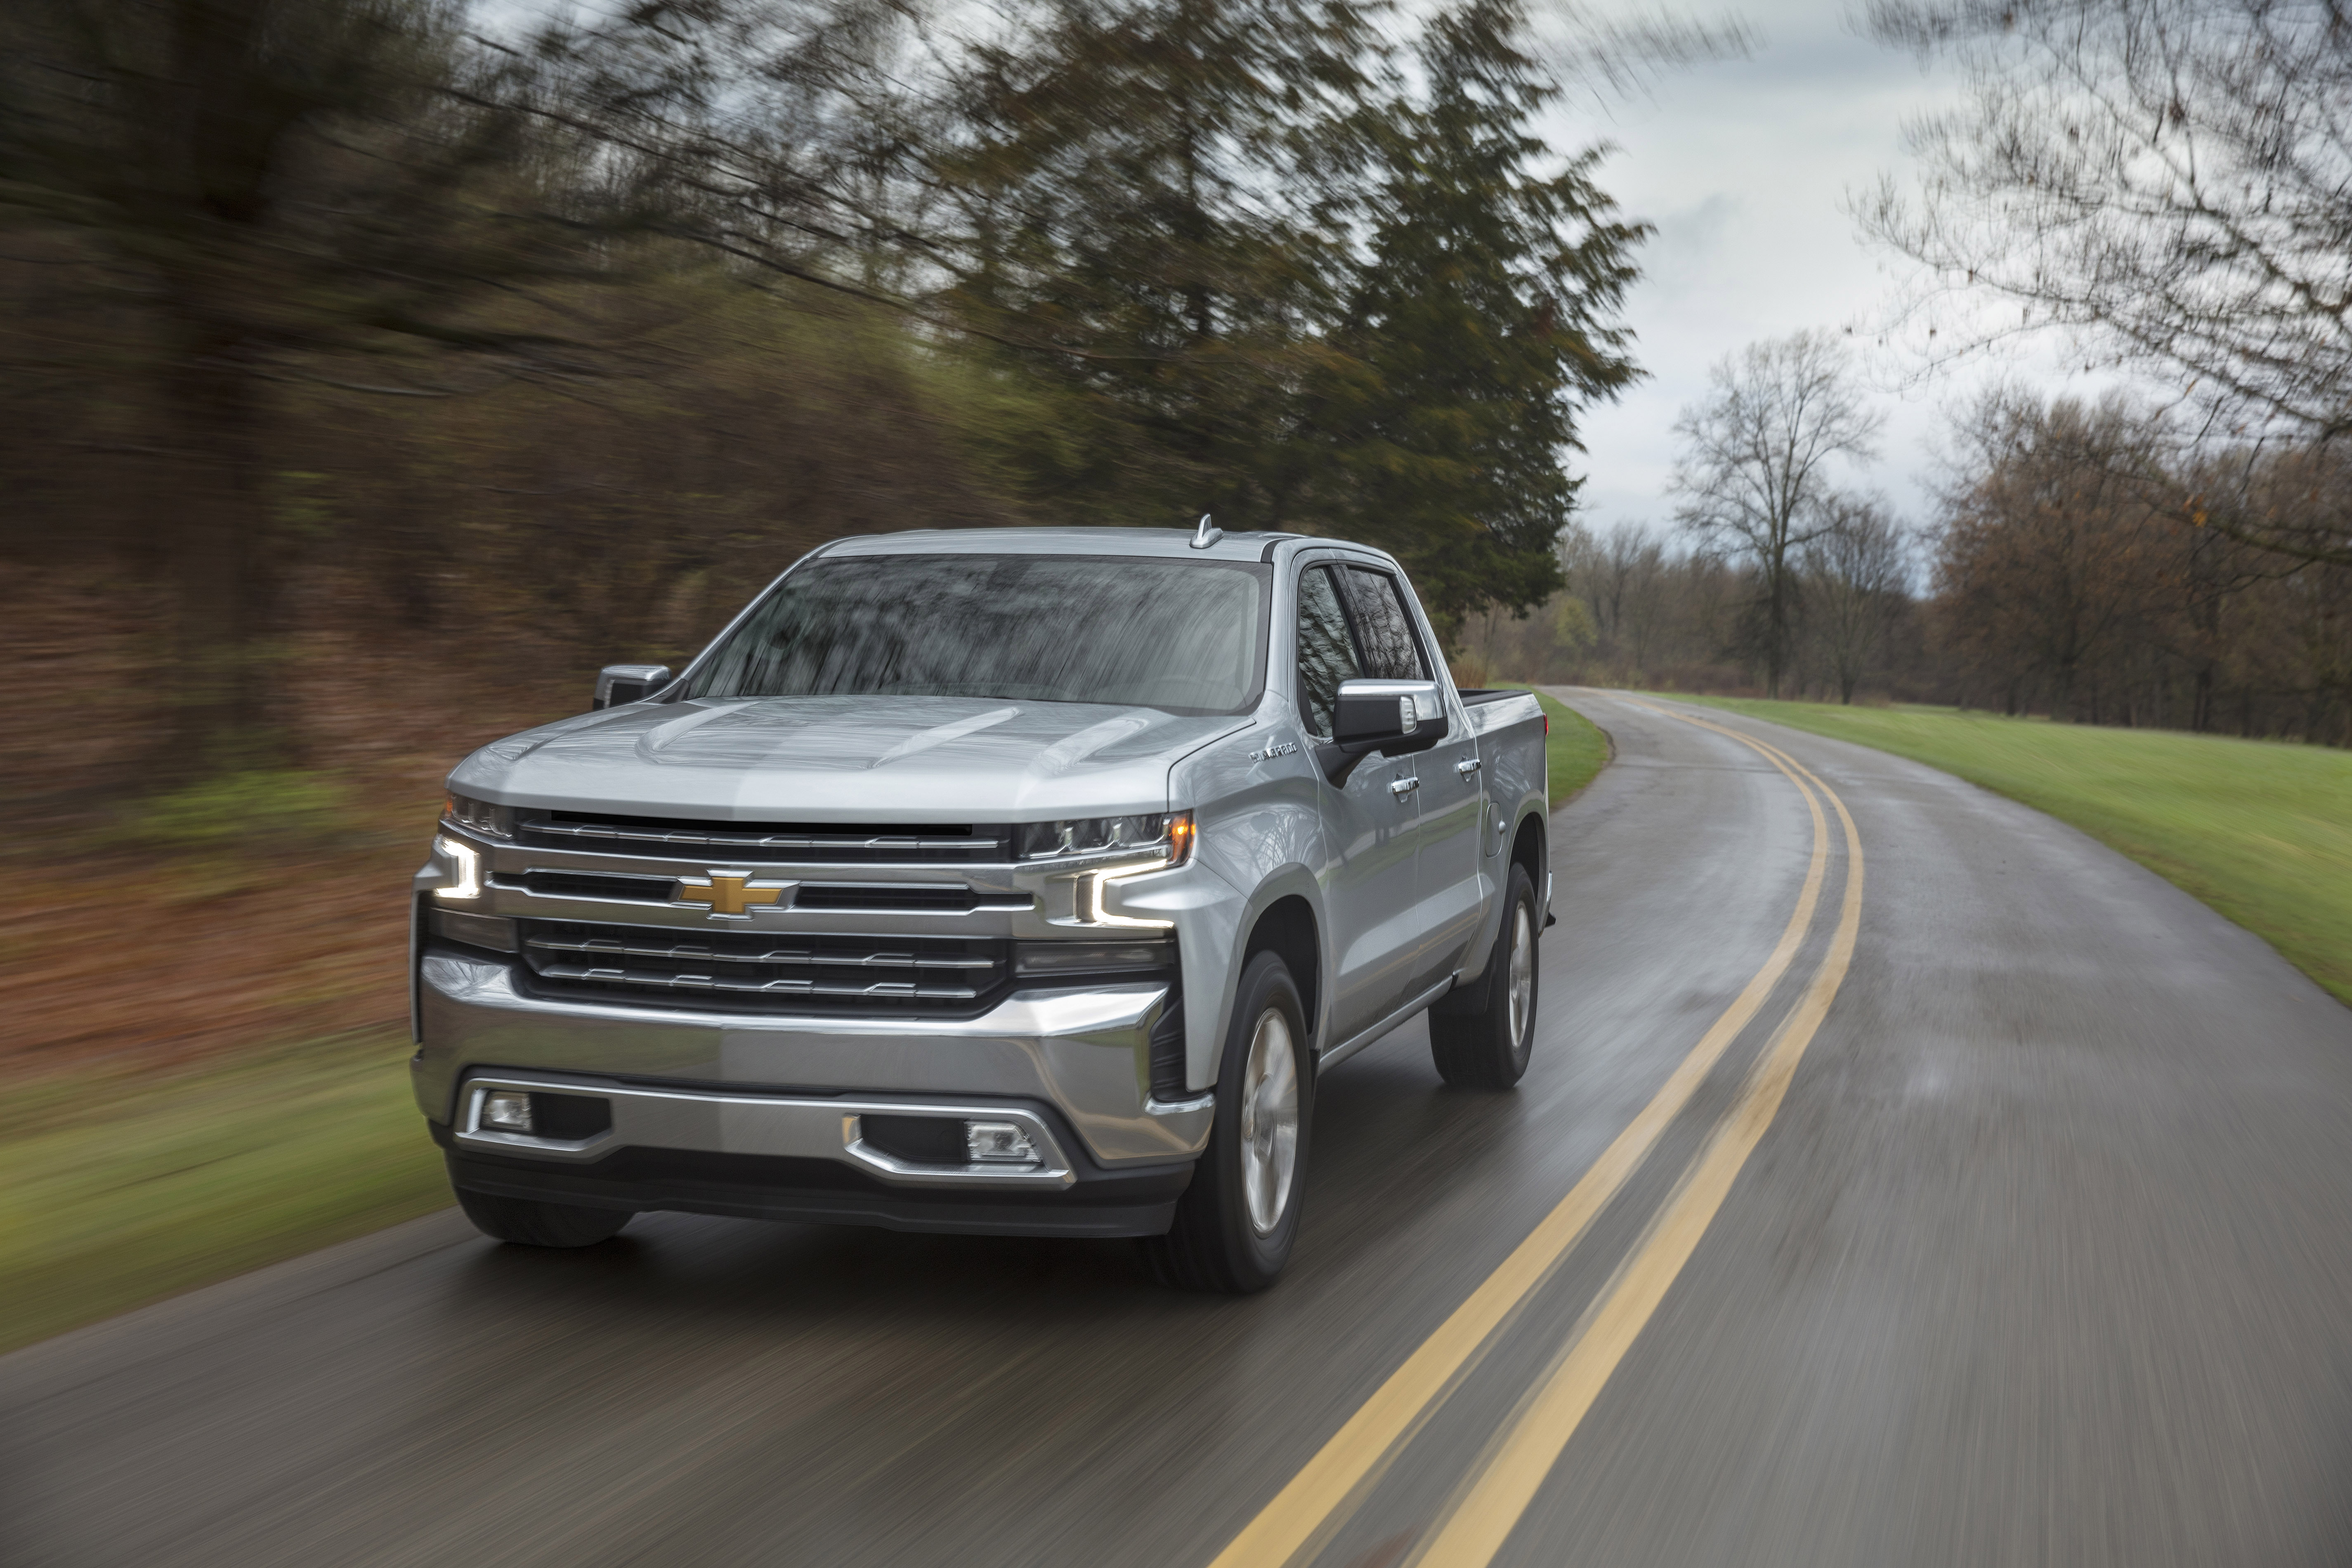 2014 Chevy Silverado Supercharger